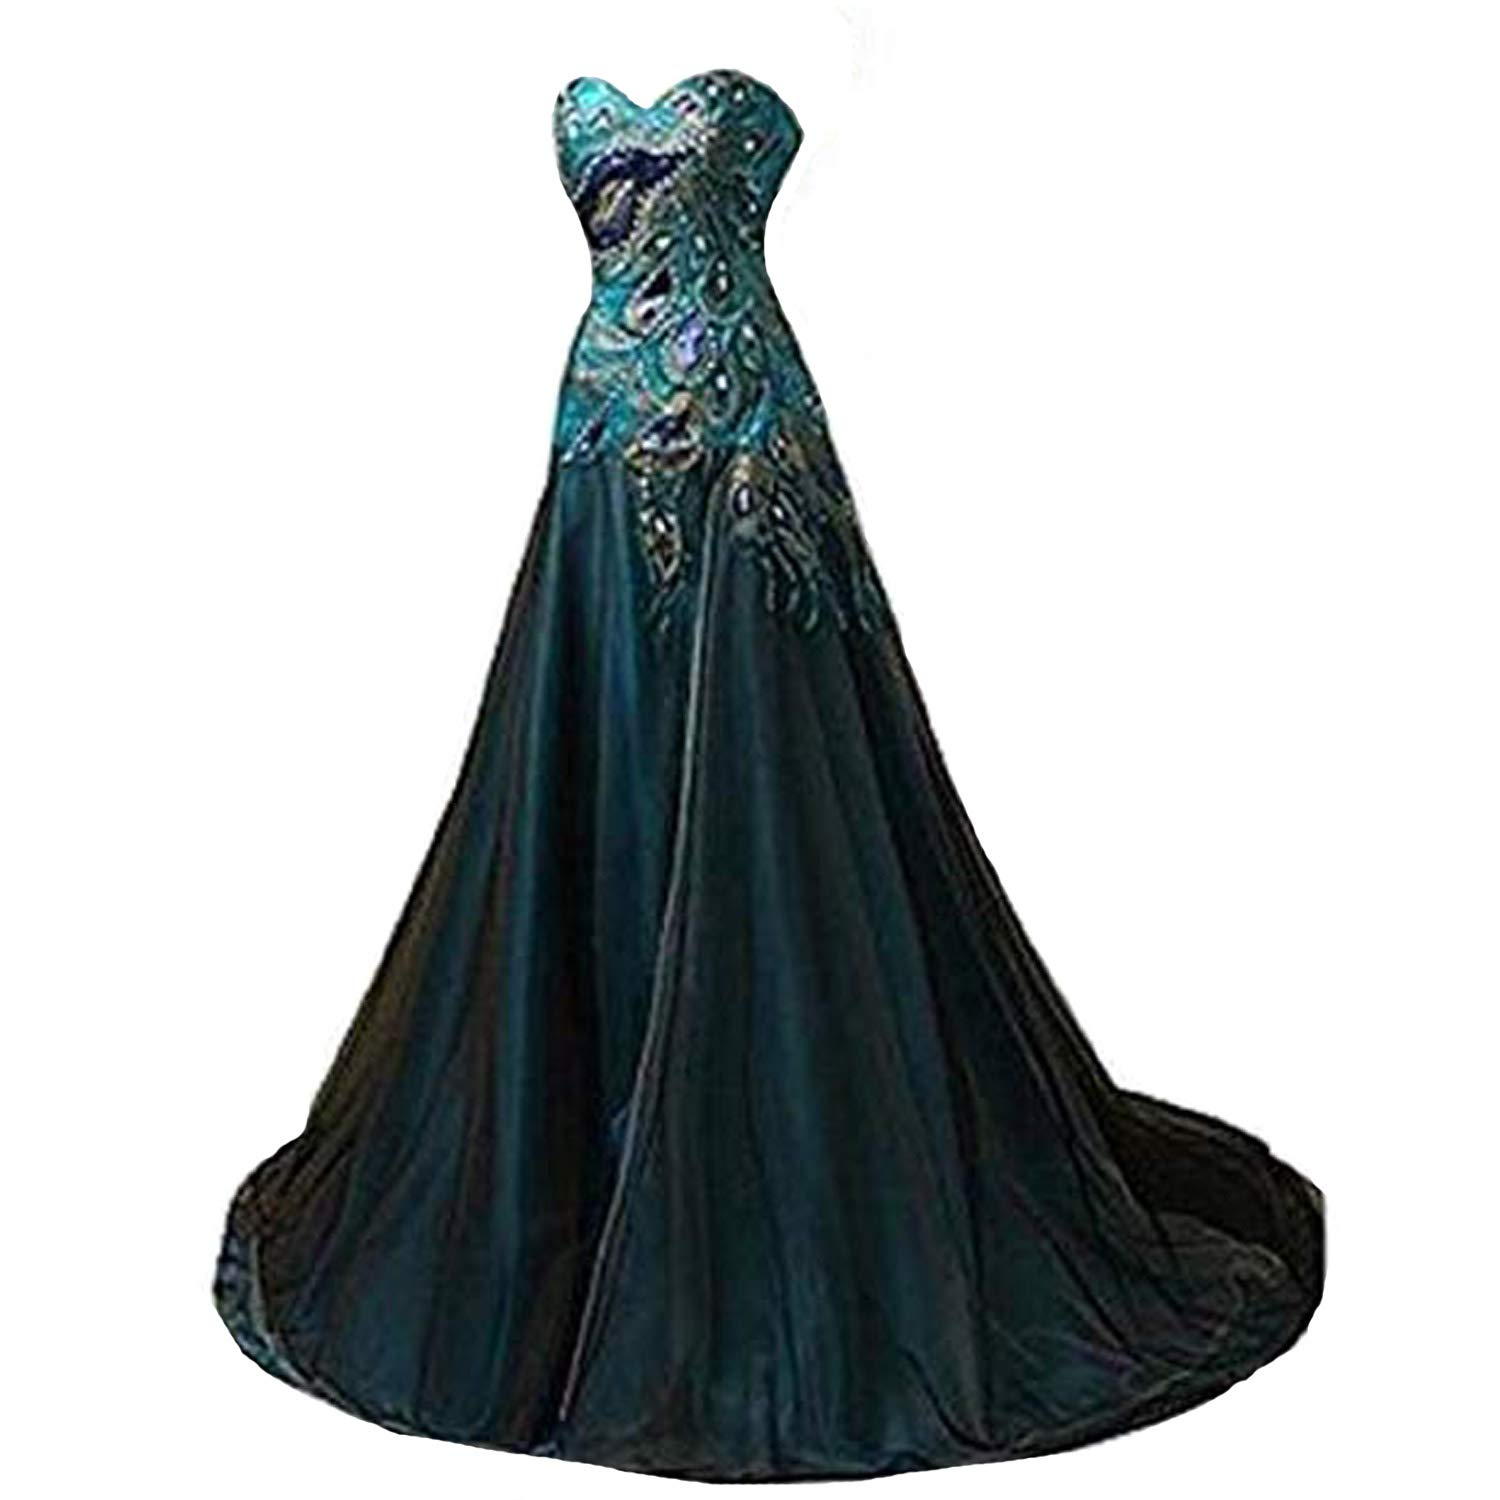 99715df9cb New Peacock Long Dress Popular Evening Dress for Women Party 2015 at Amazon  Women s Clothing store